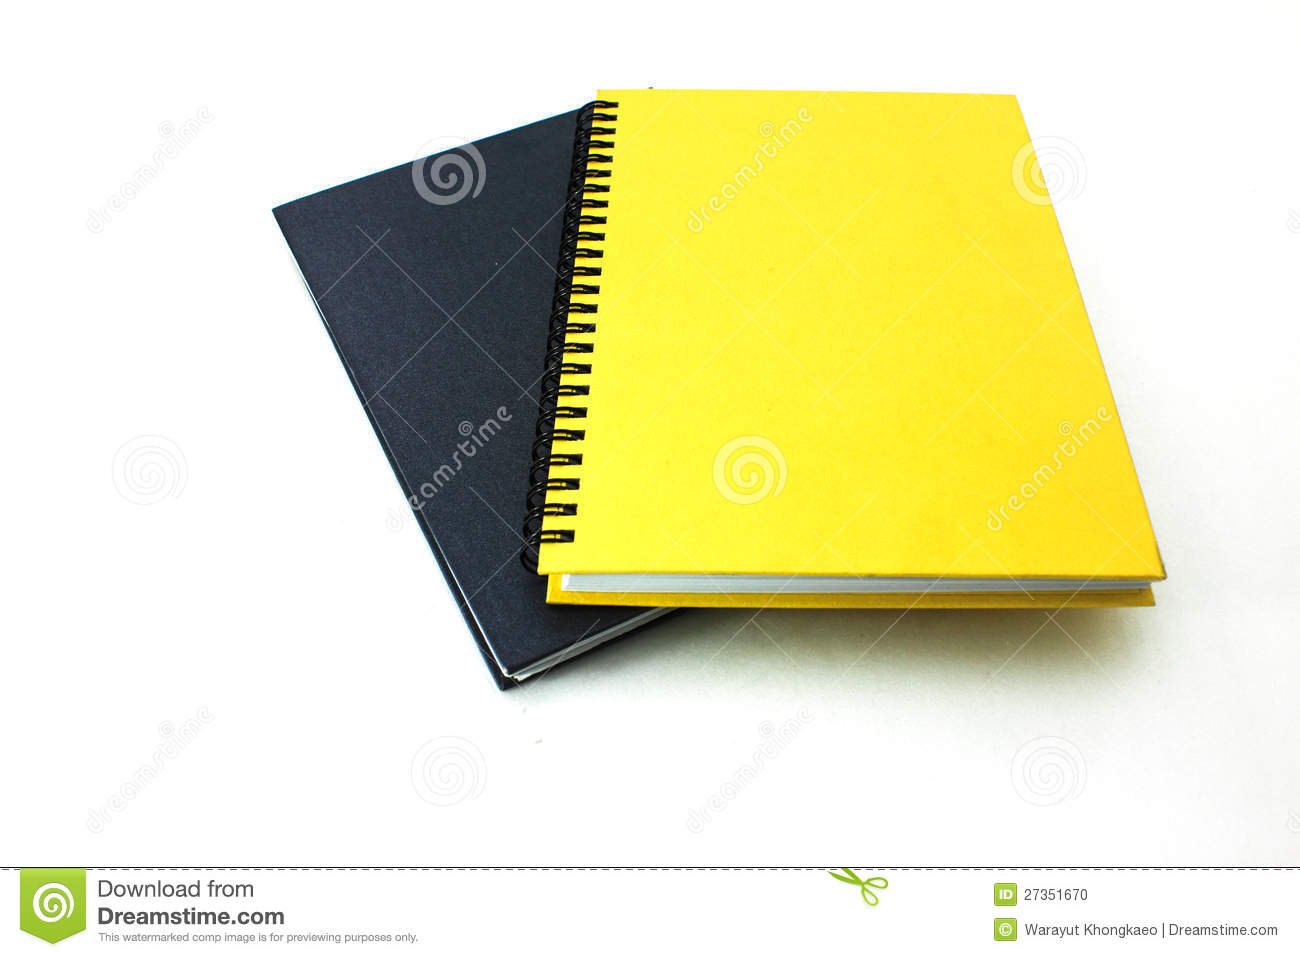 Book With Black And Yellow Cover : Black and yellow books on white background stock photo